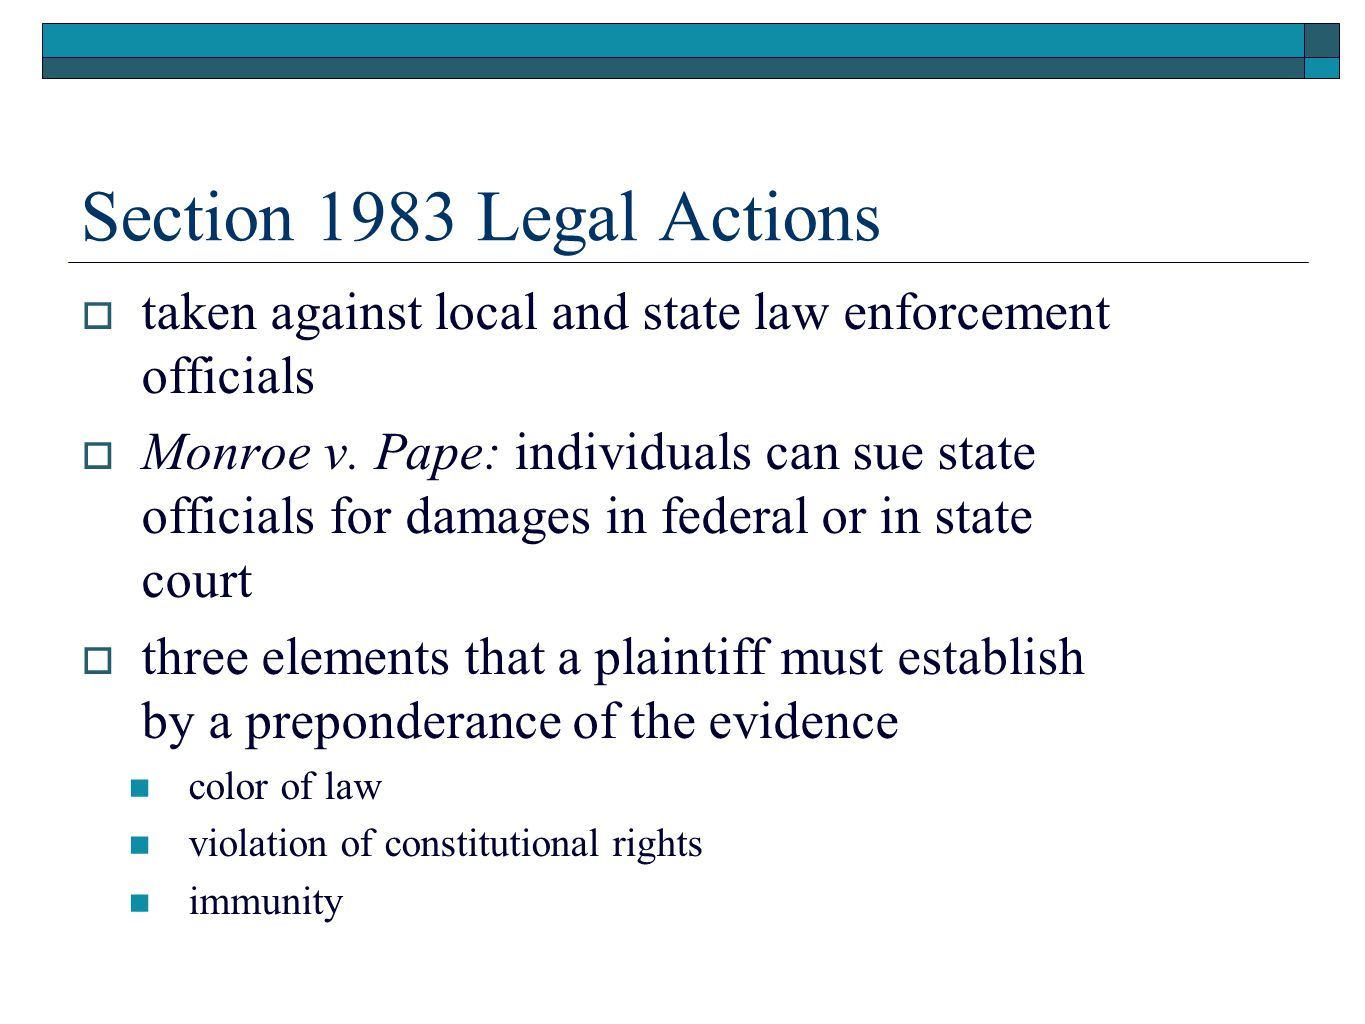 law enforcement structure function and jurisdiction Functions of law law performs many functions and plays a central role in business and society melvin (2011) stated a generally accepted generic definition of the law is a body of rules of action or conduct prescribed by controlling authority, and having legal binding force.